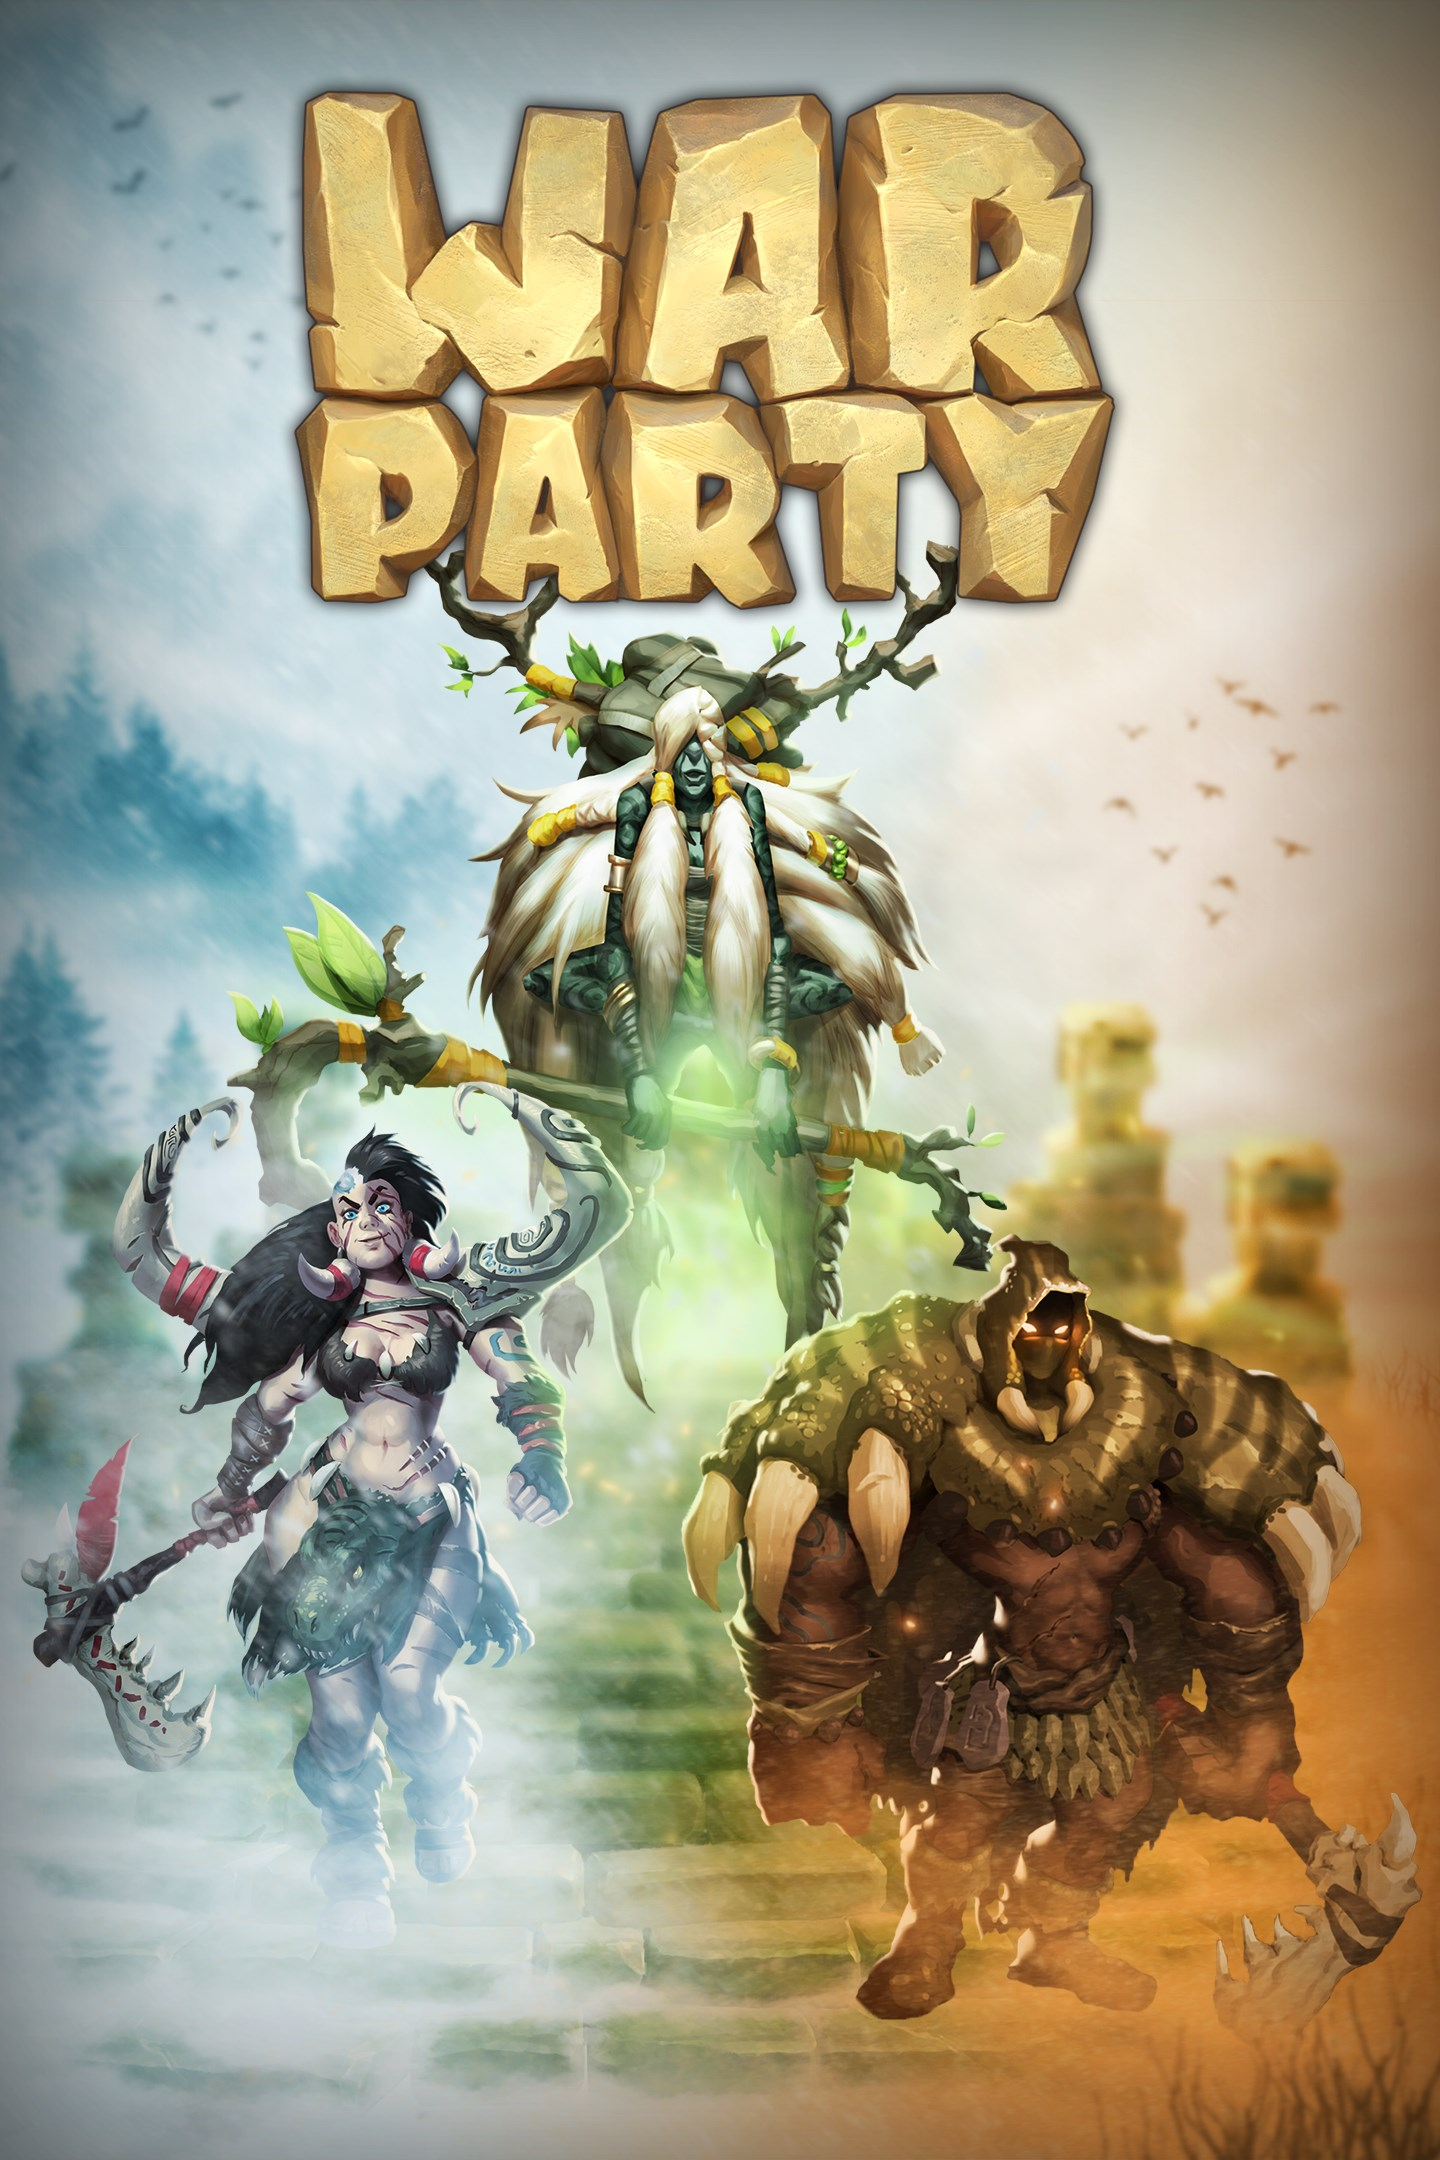 Buy Warparty - Microsoft Store